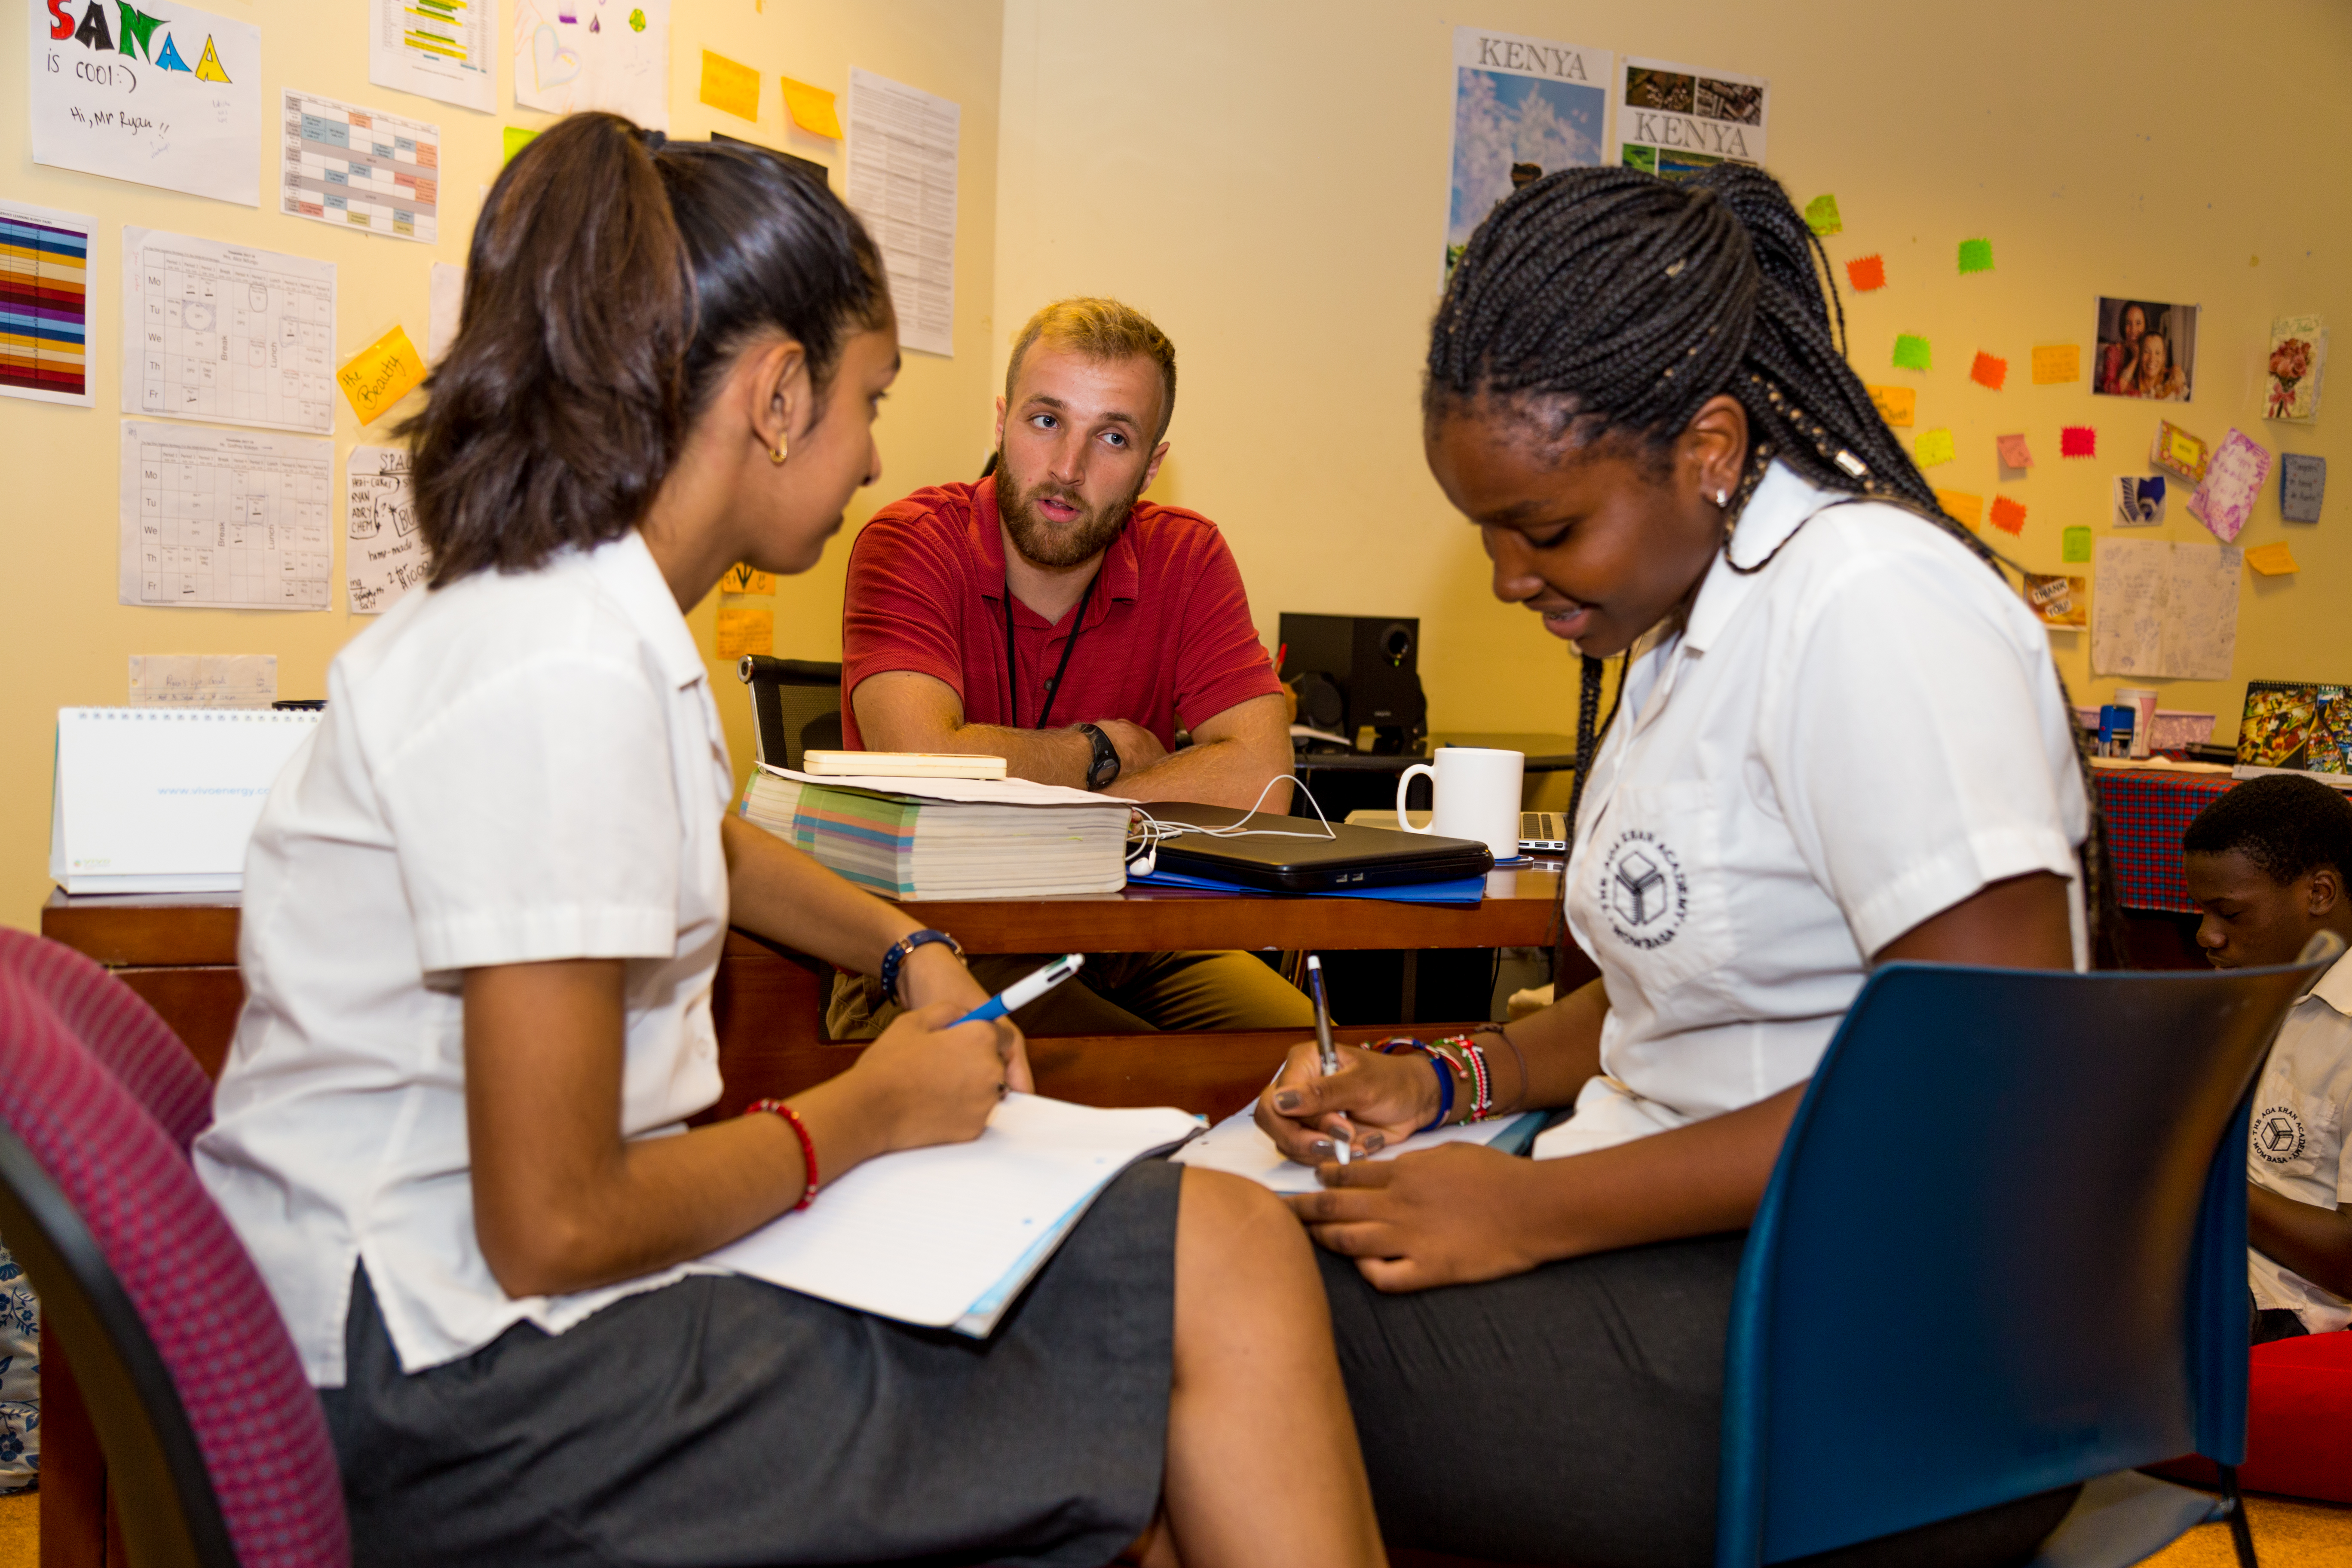 Ryan, works with students on their university applications